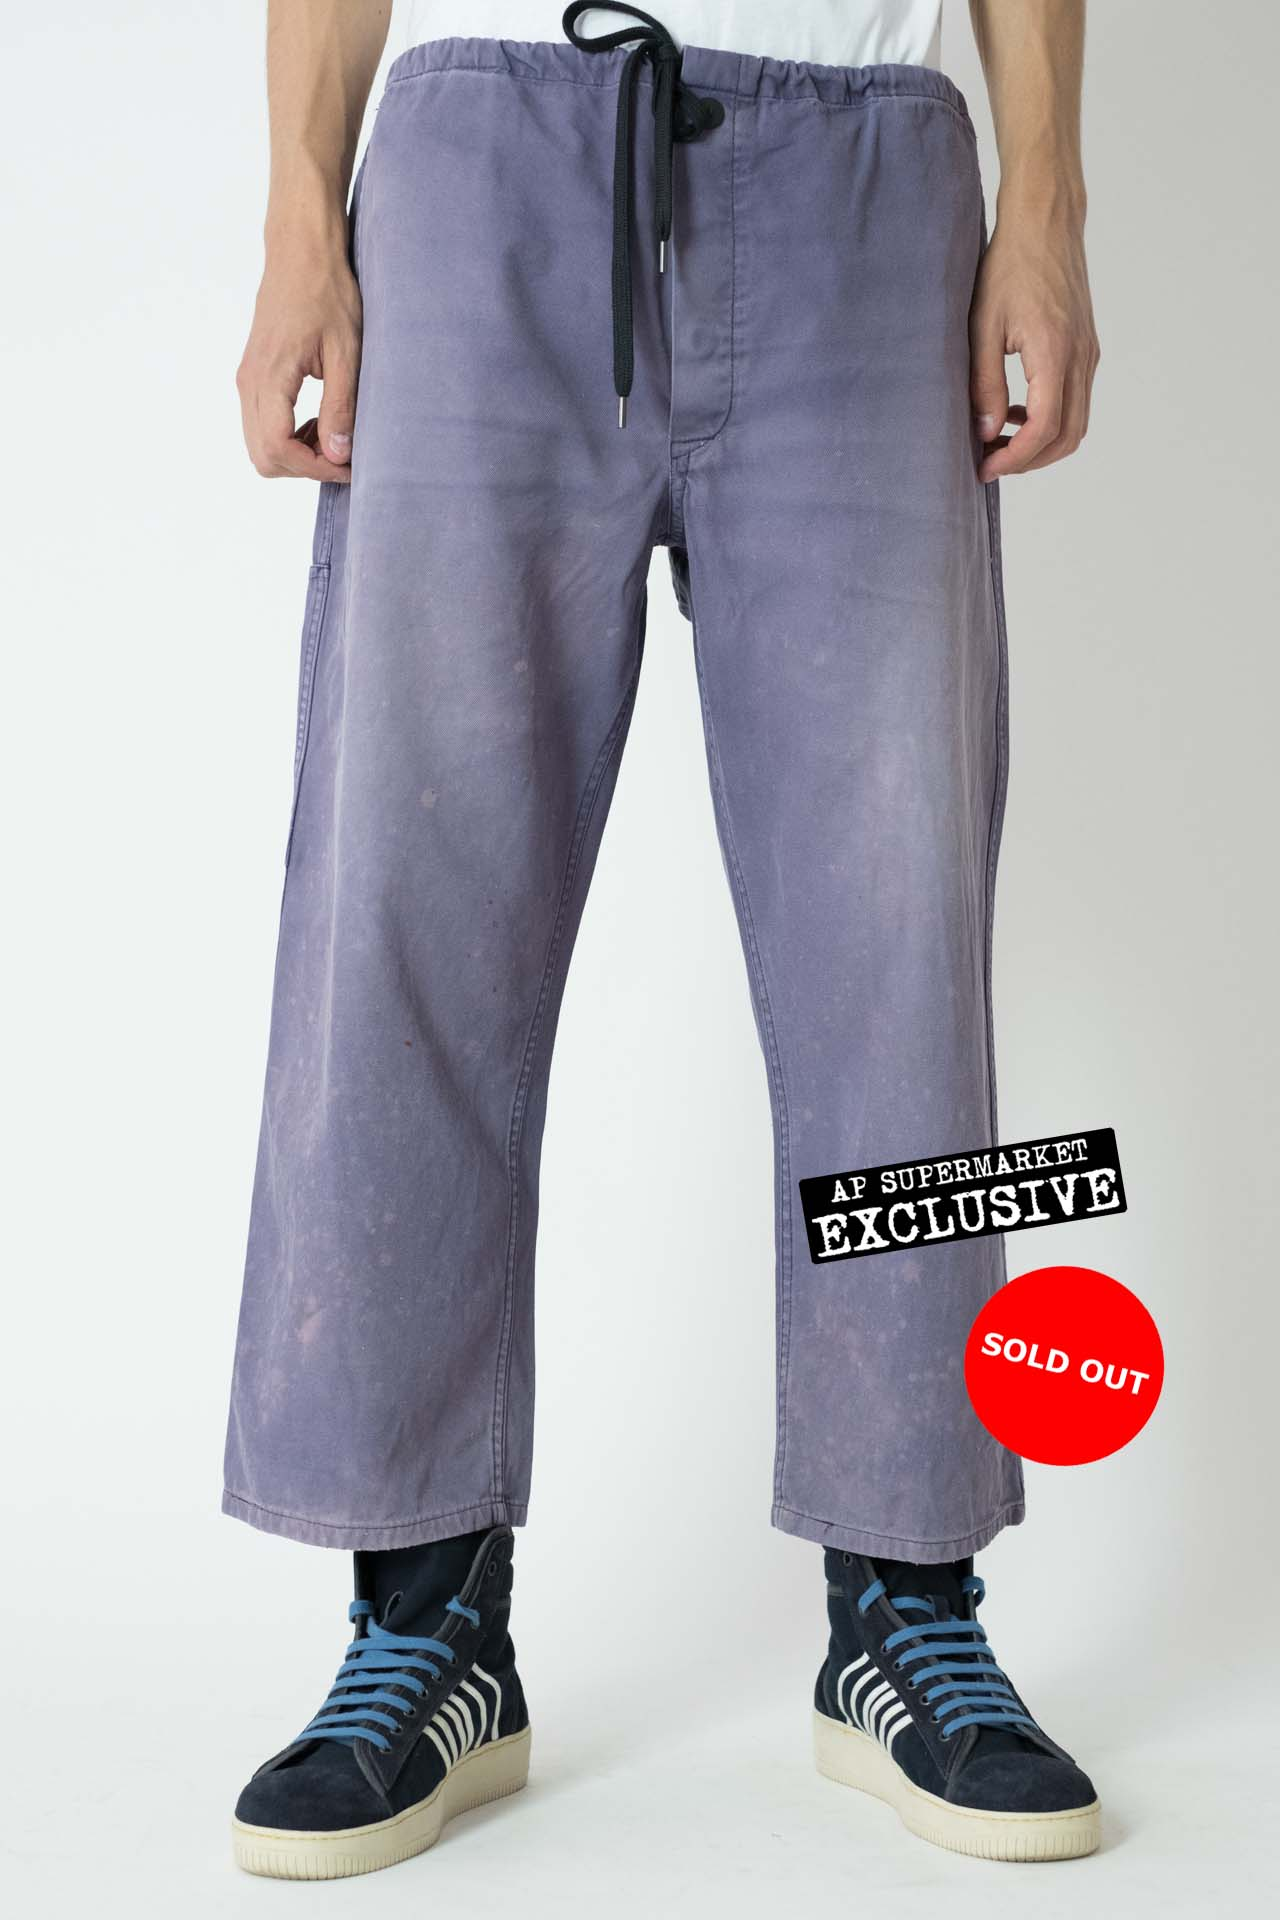 Andrea Pompilio Selected Trousers Appants